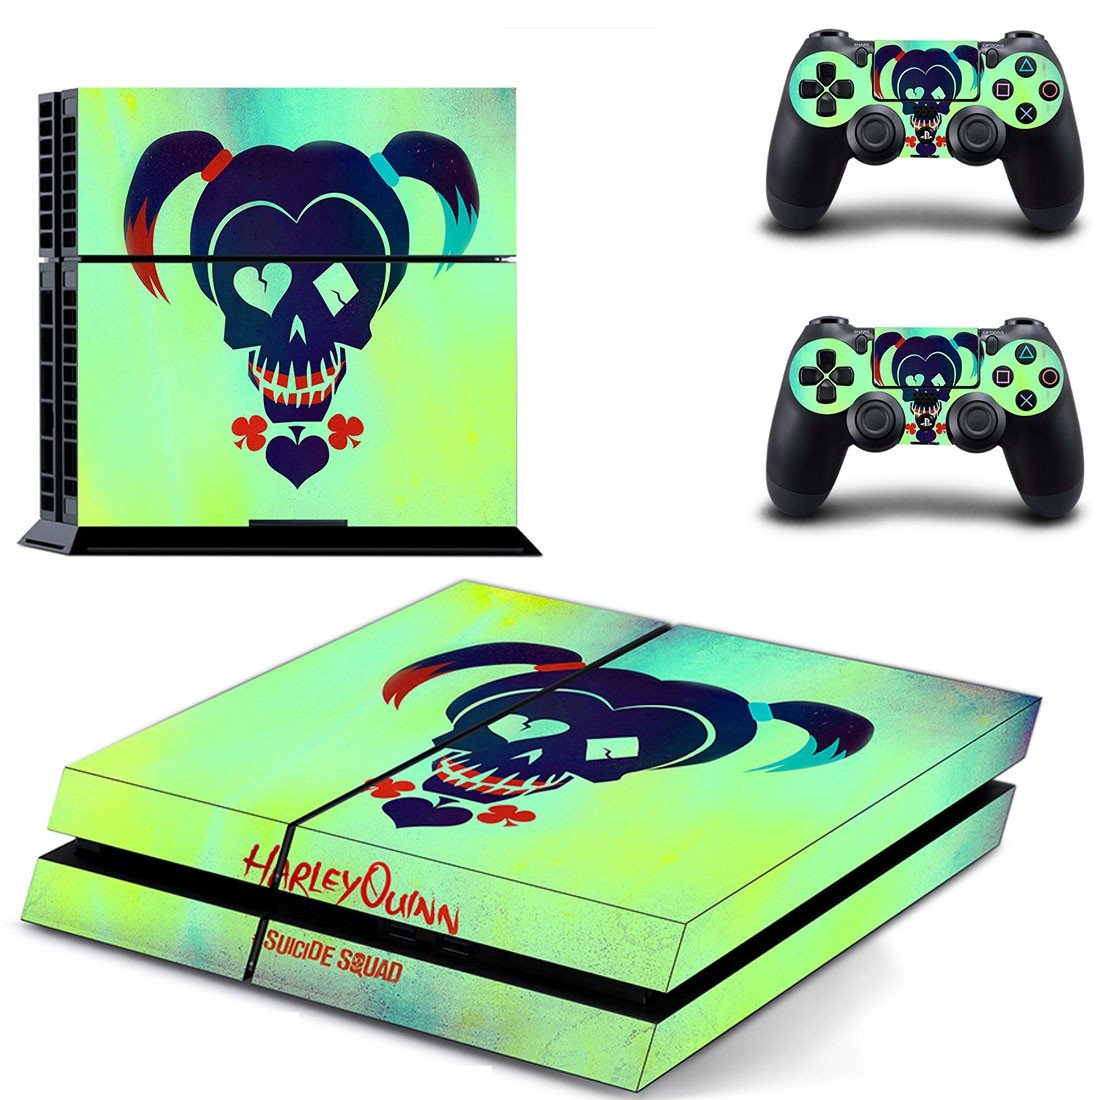 Harley Quin & Suicide Squad ps4 skin decal for console and controllers